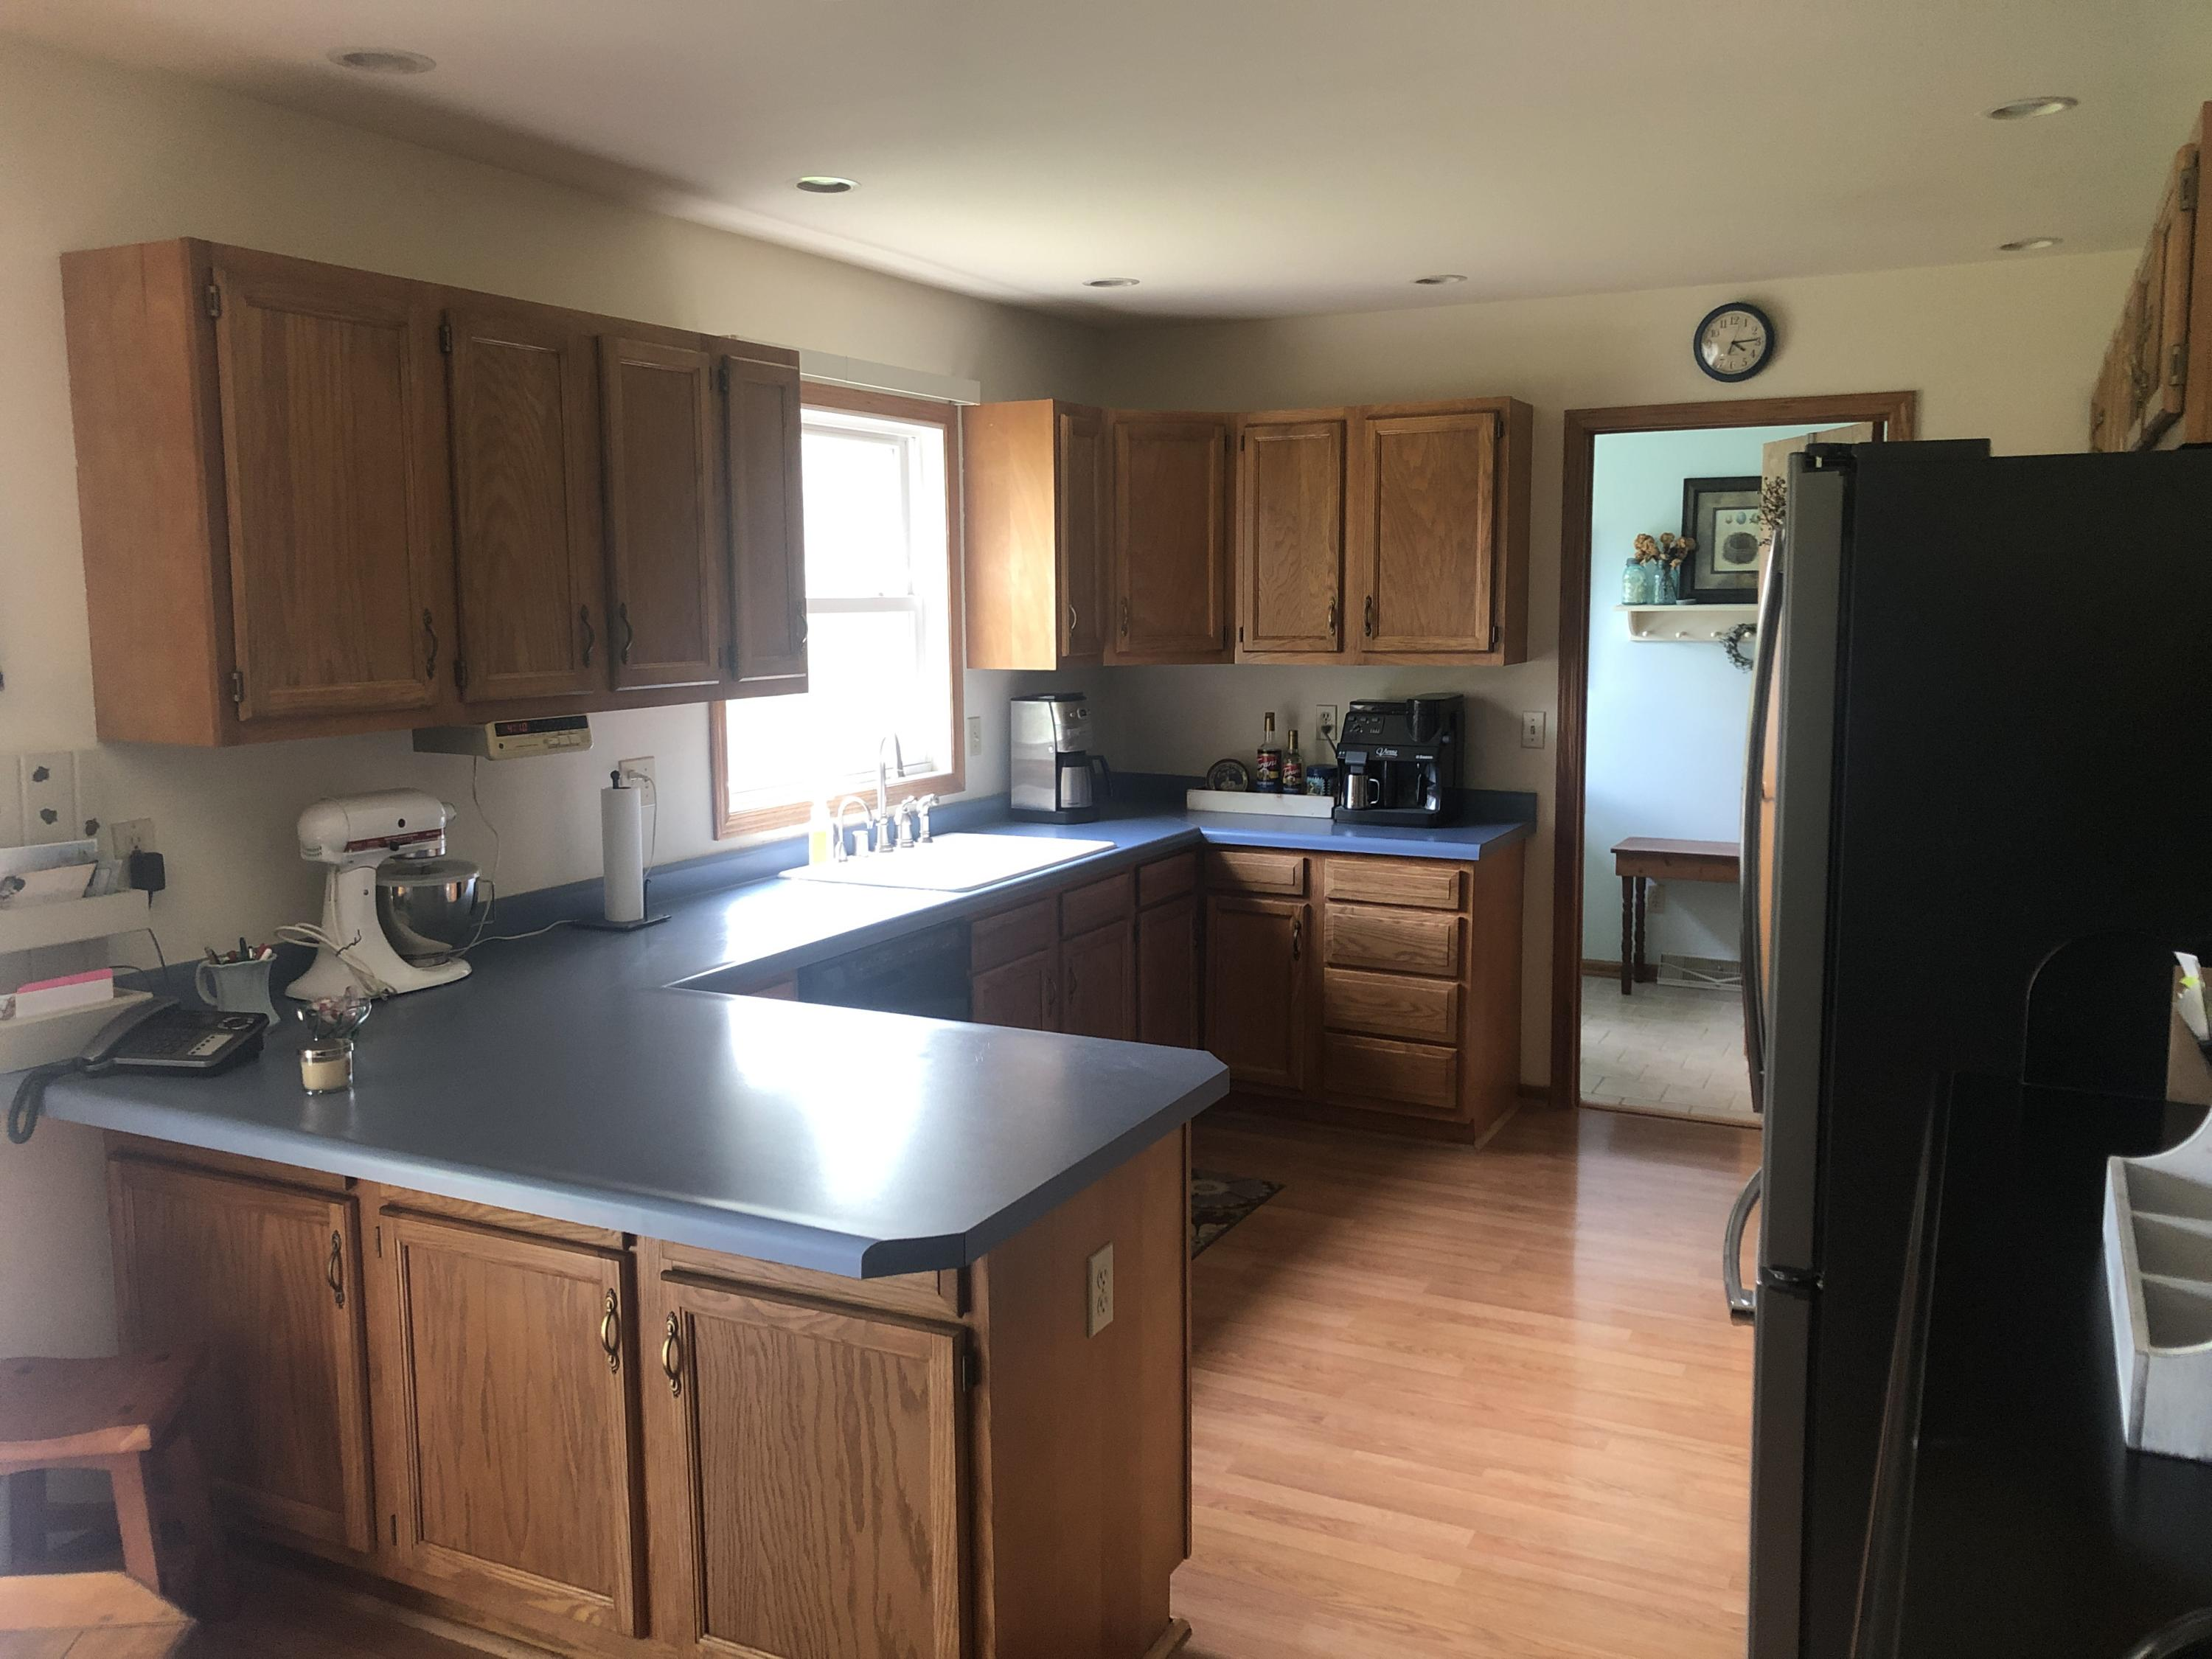 9103 Meadow Park Ln, Caledonia, Wisconsin 53126, 3 Bedrooms Bedrooms, ,1 BathroomBathrooms,Single-Family,For Sale,Meadow Park Ln,1690361